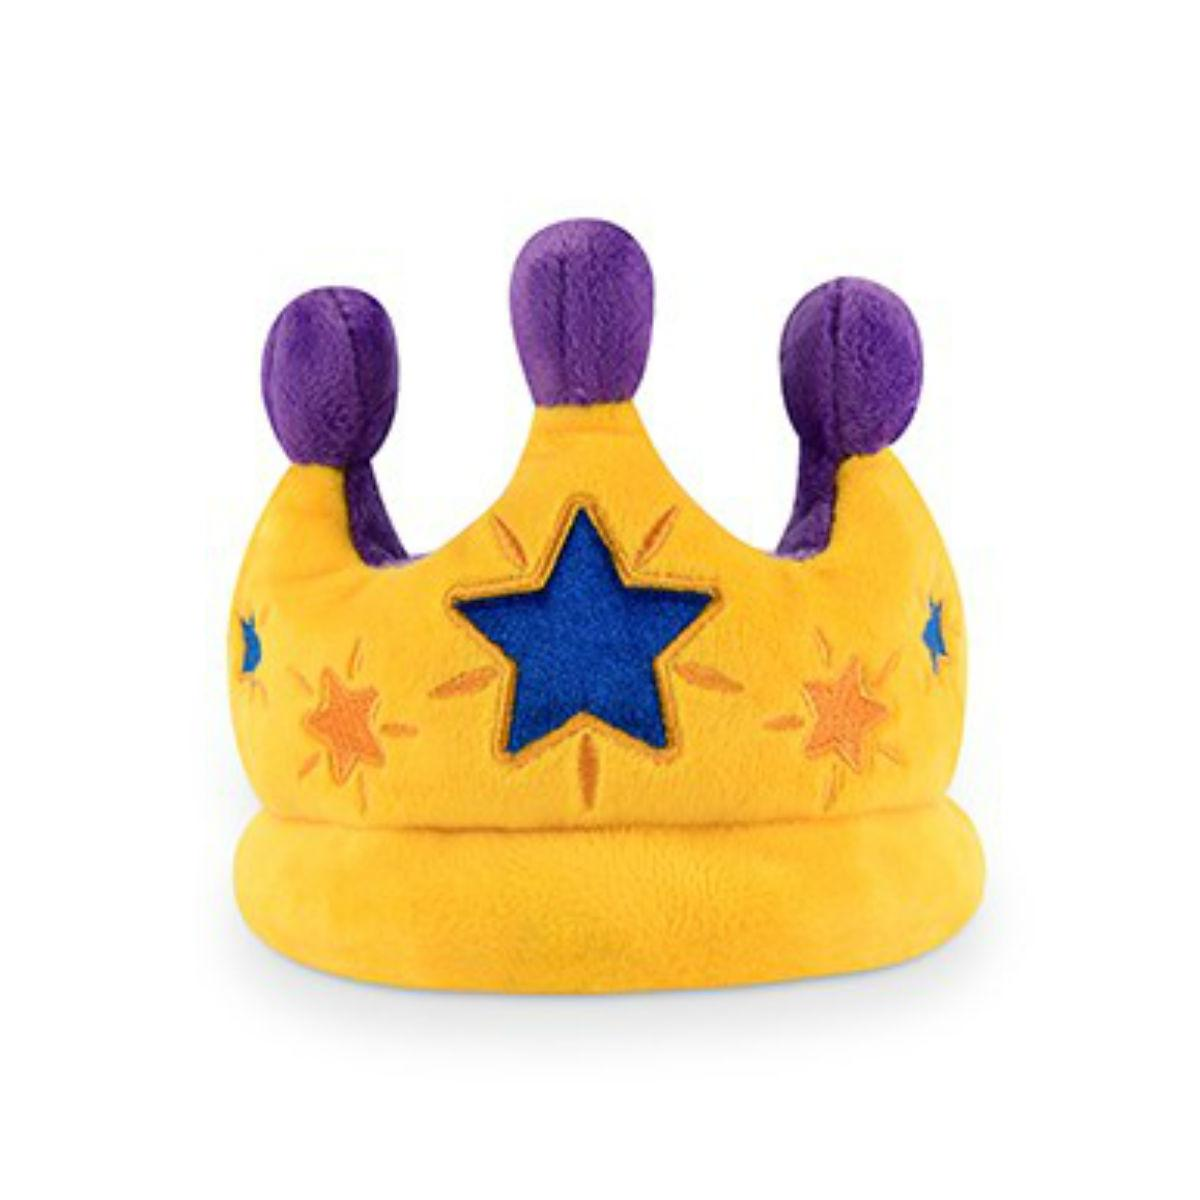 P.L.A.Y. Party Time Dog Toy - Crown